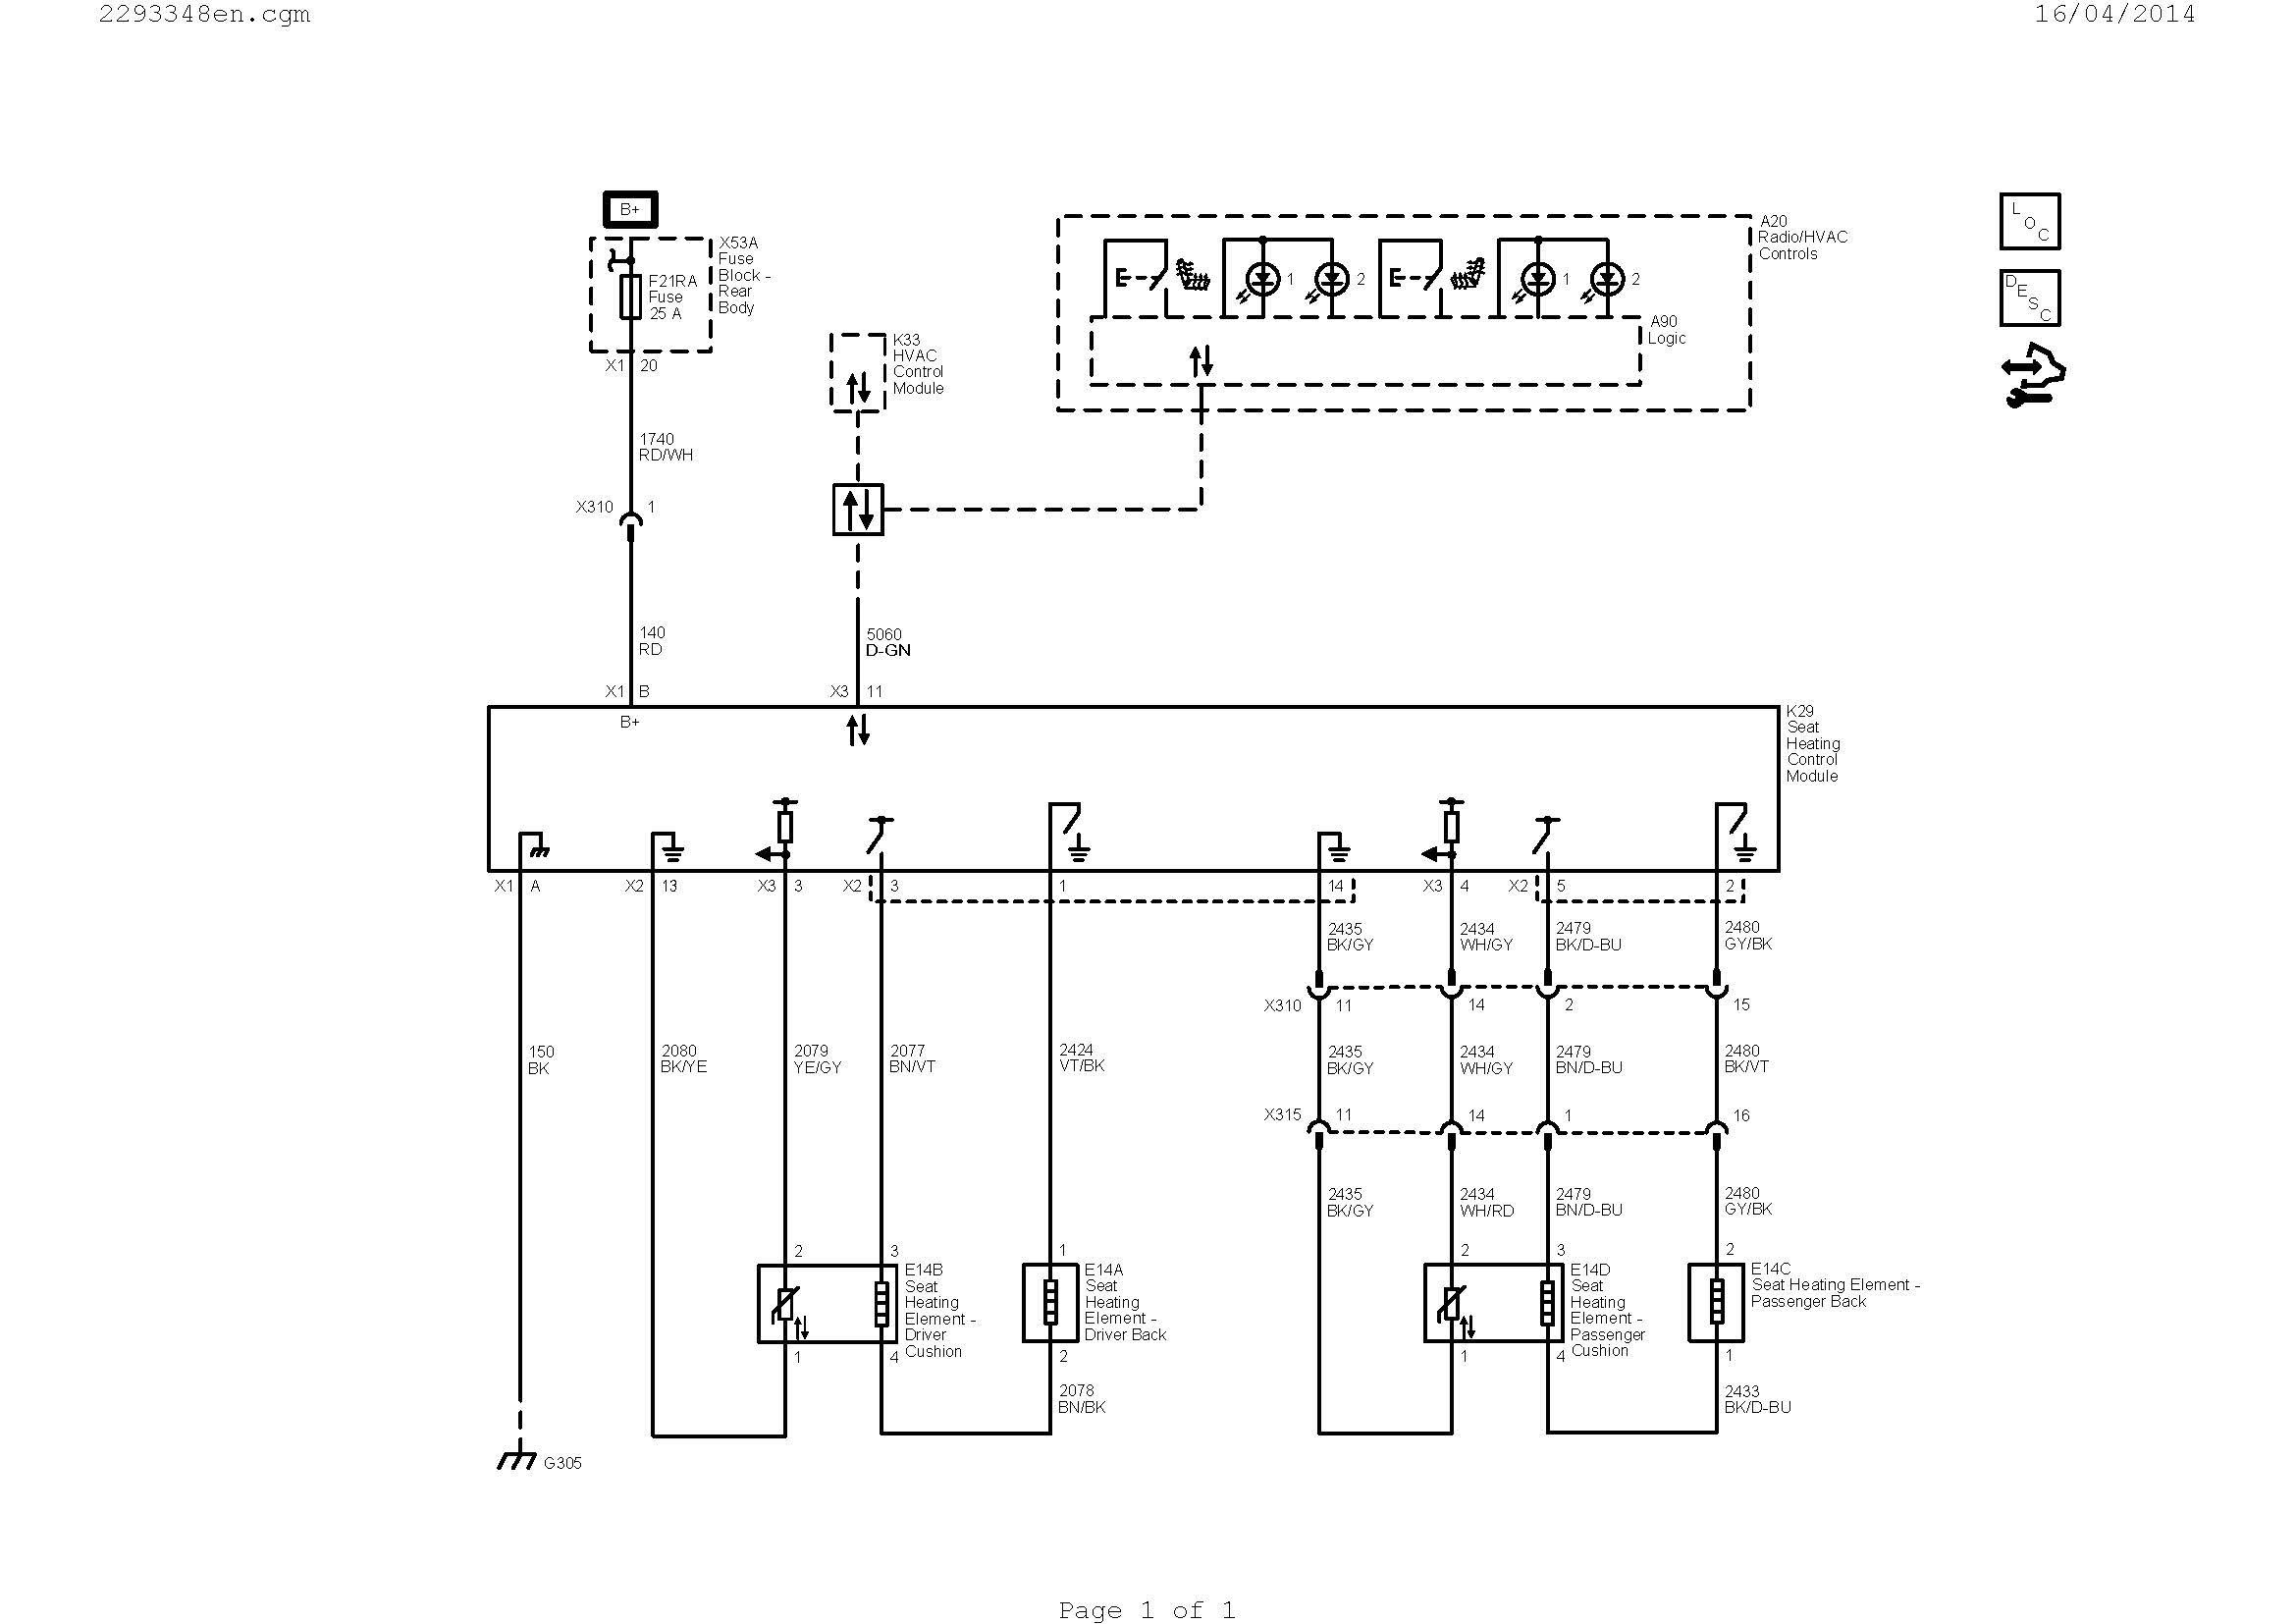 Hvac Wiring Diagram - Wiring Diagram Schematic New Wiring Diagram Guitar Fresh Hvac Diagram Best Hvac Diagram 0d 15l